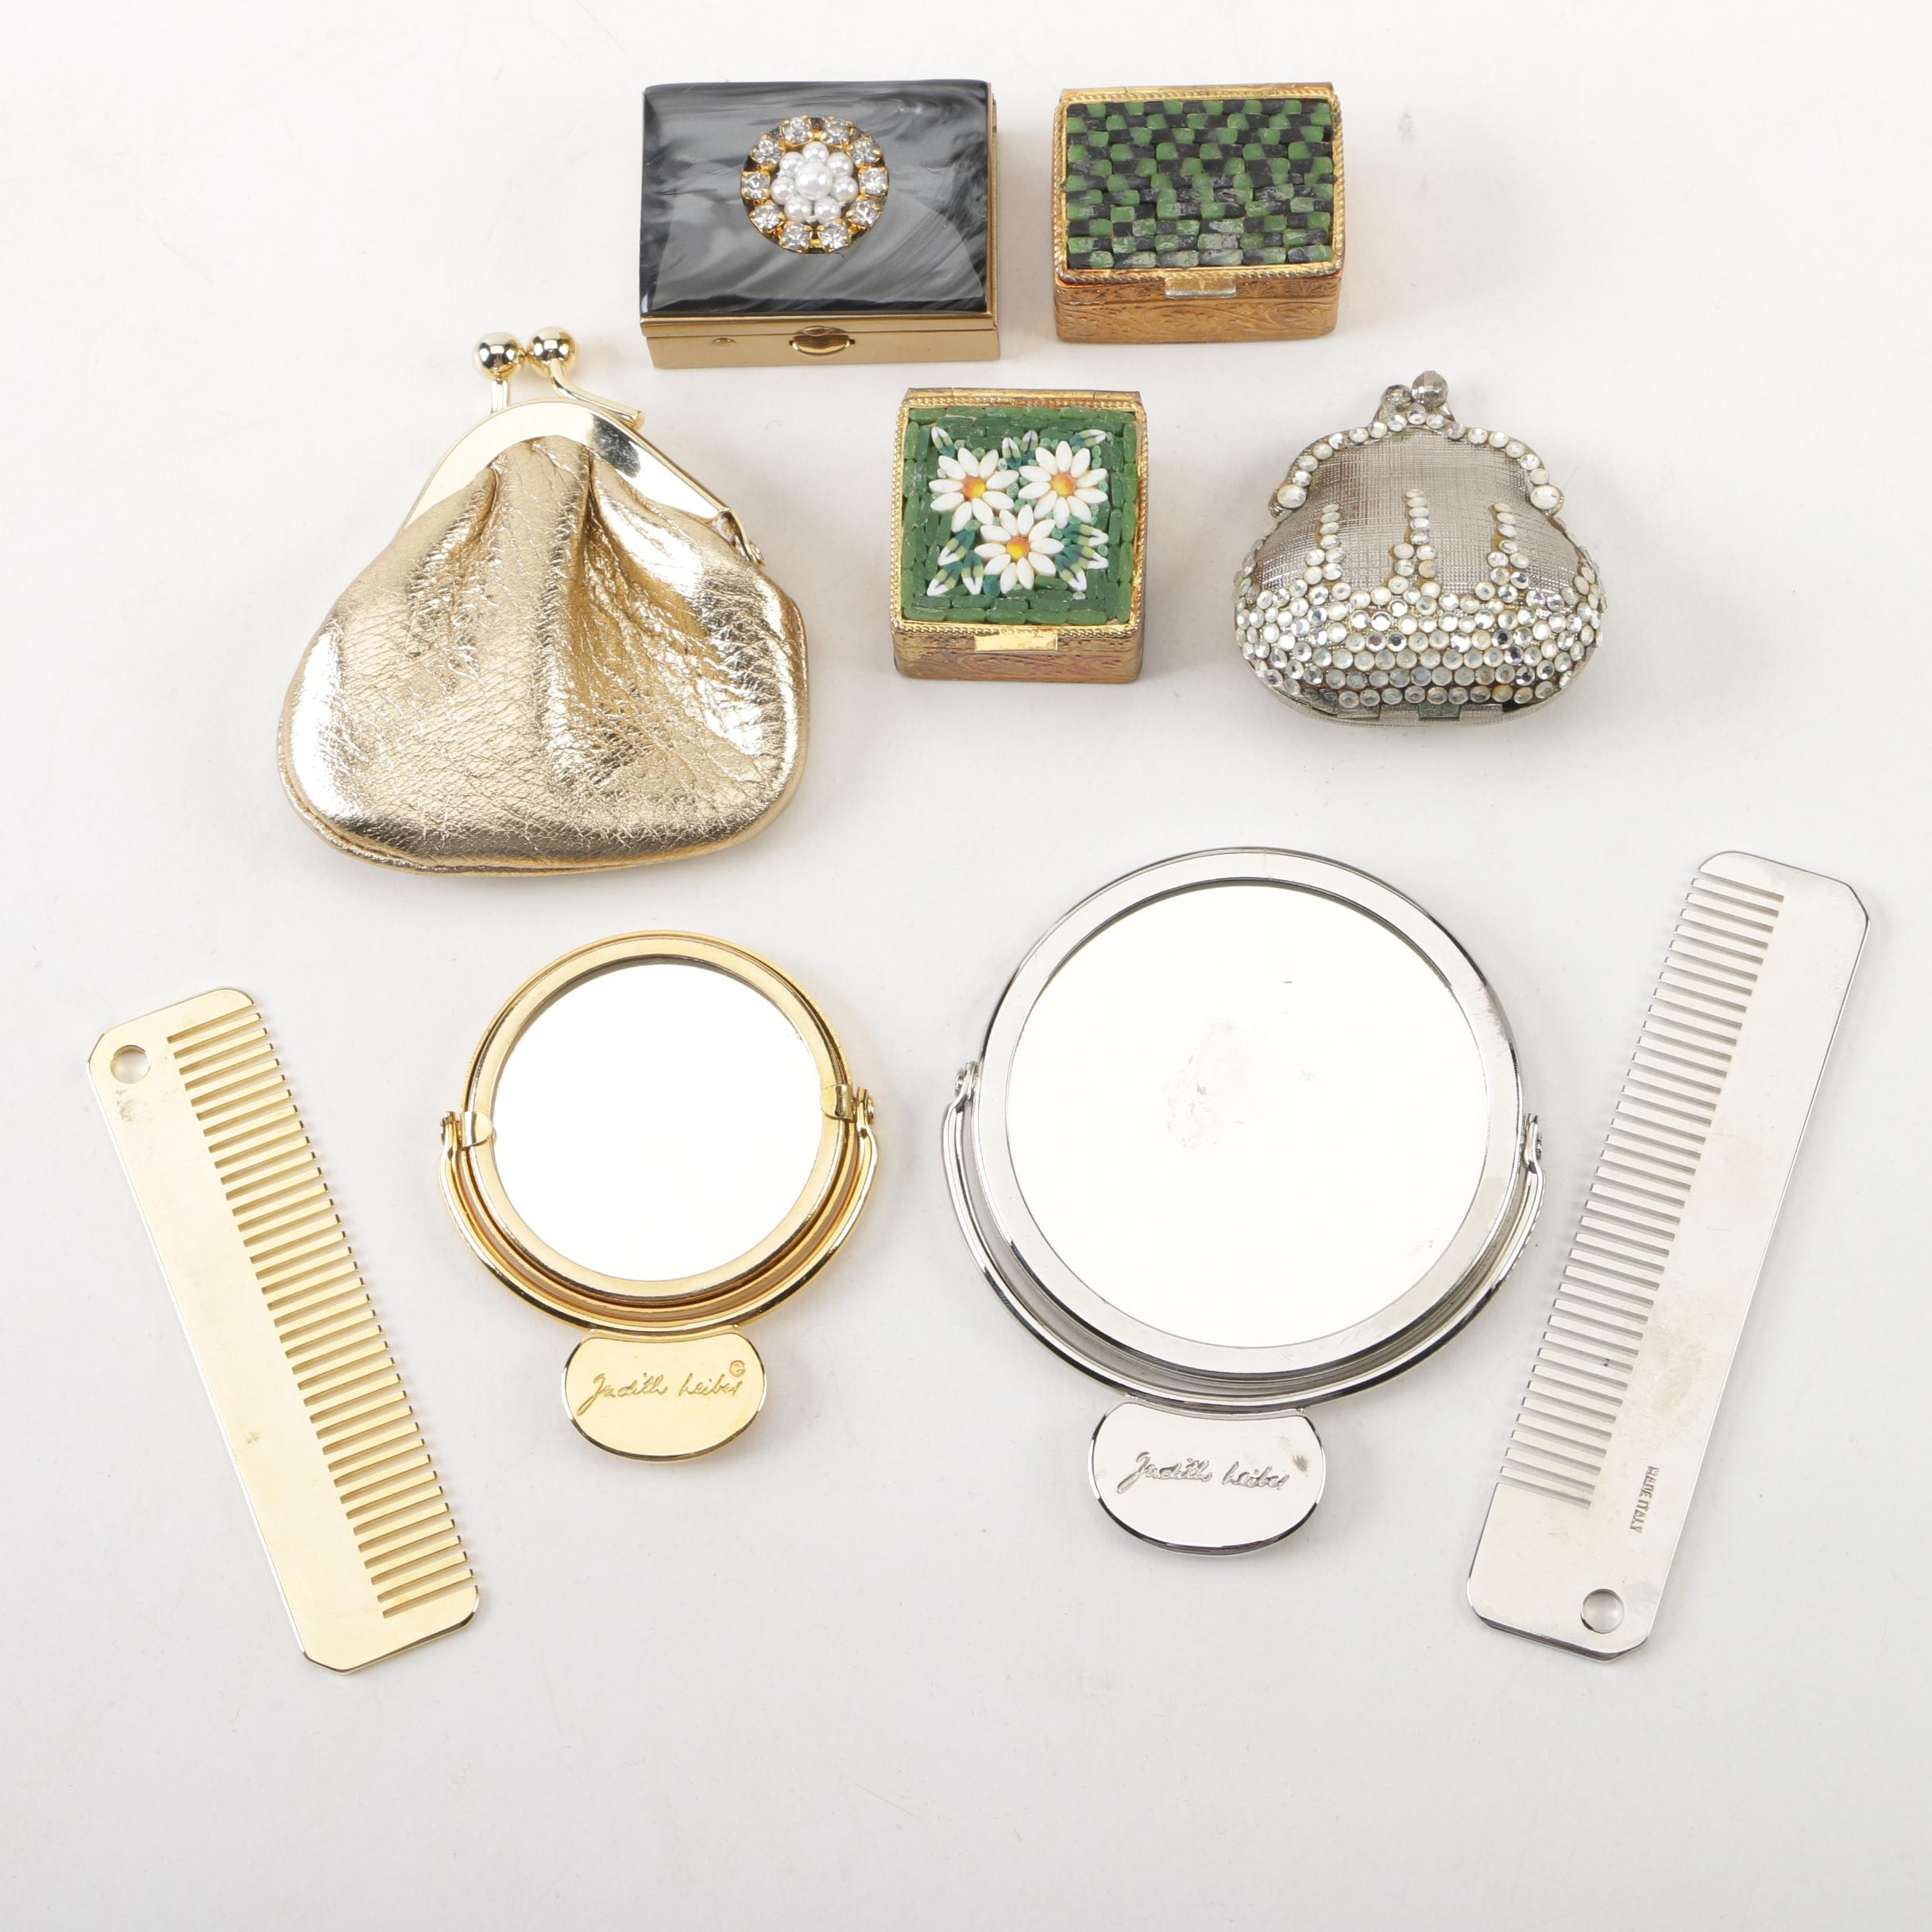 Pill Boxes and Purse Accessories Including Judith Leiber